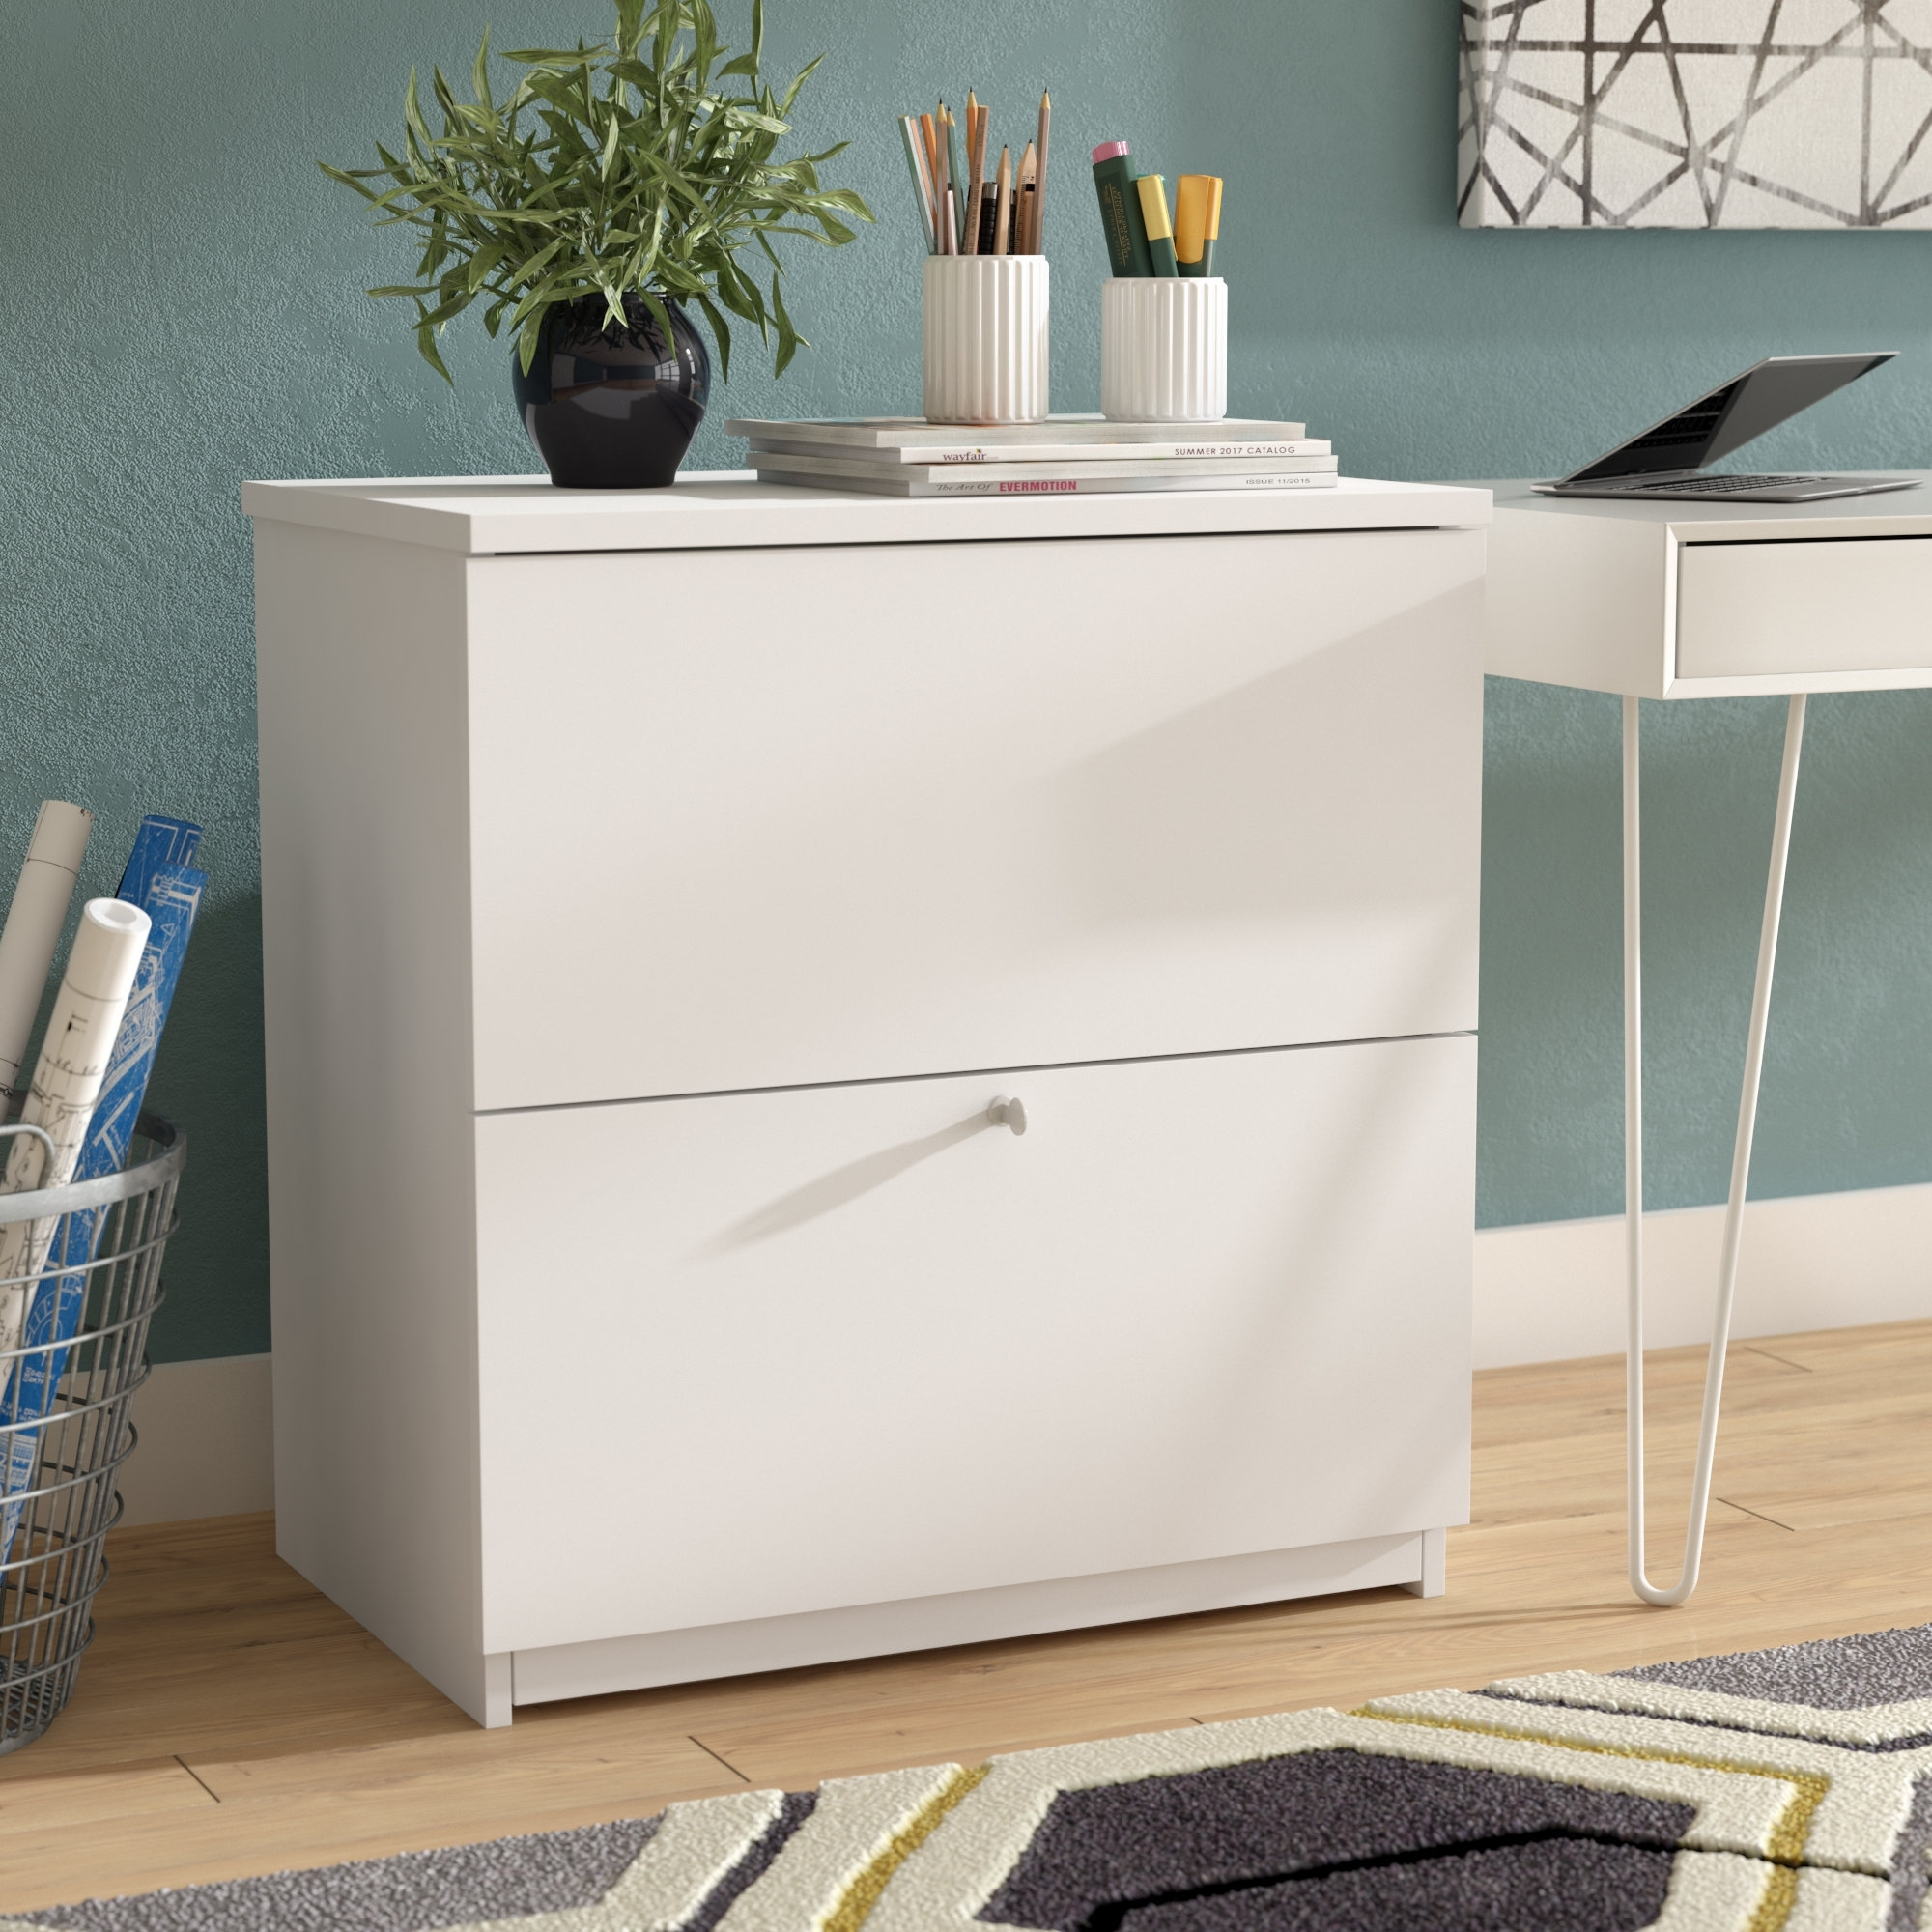 Independence 2-Drawer Lateral Filing Cabinet & Reviews | Allmodern with regard to Jaxon Sideboards (Image 6 of 30)